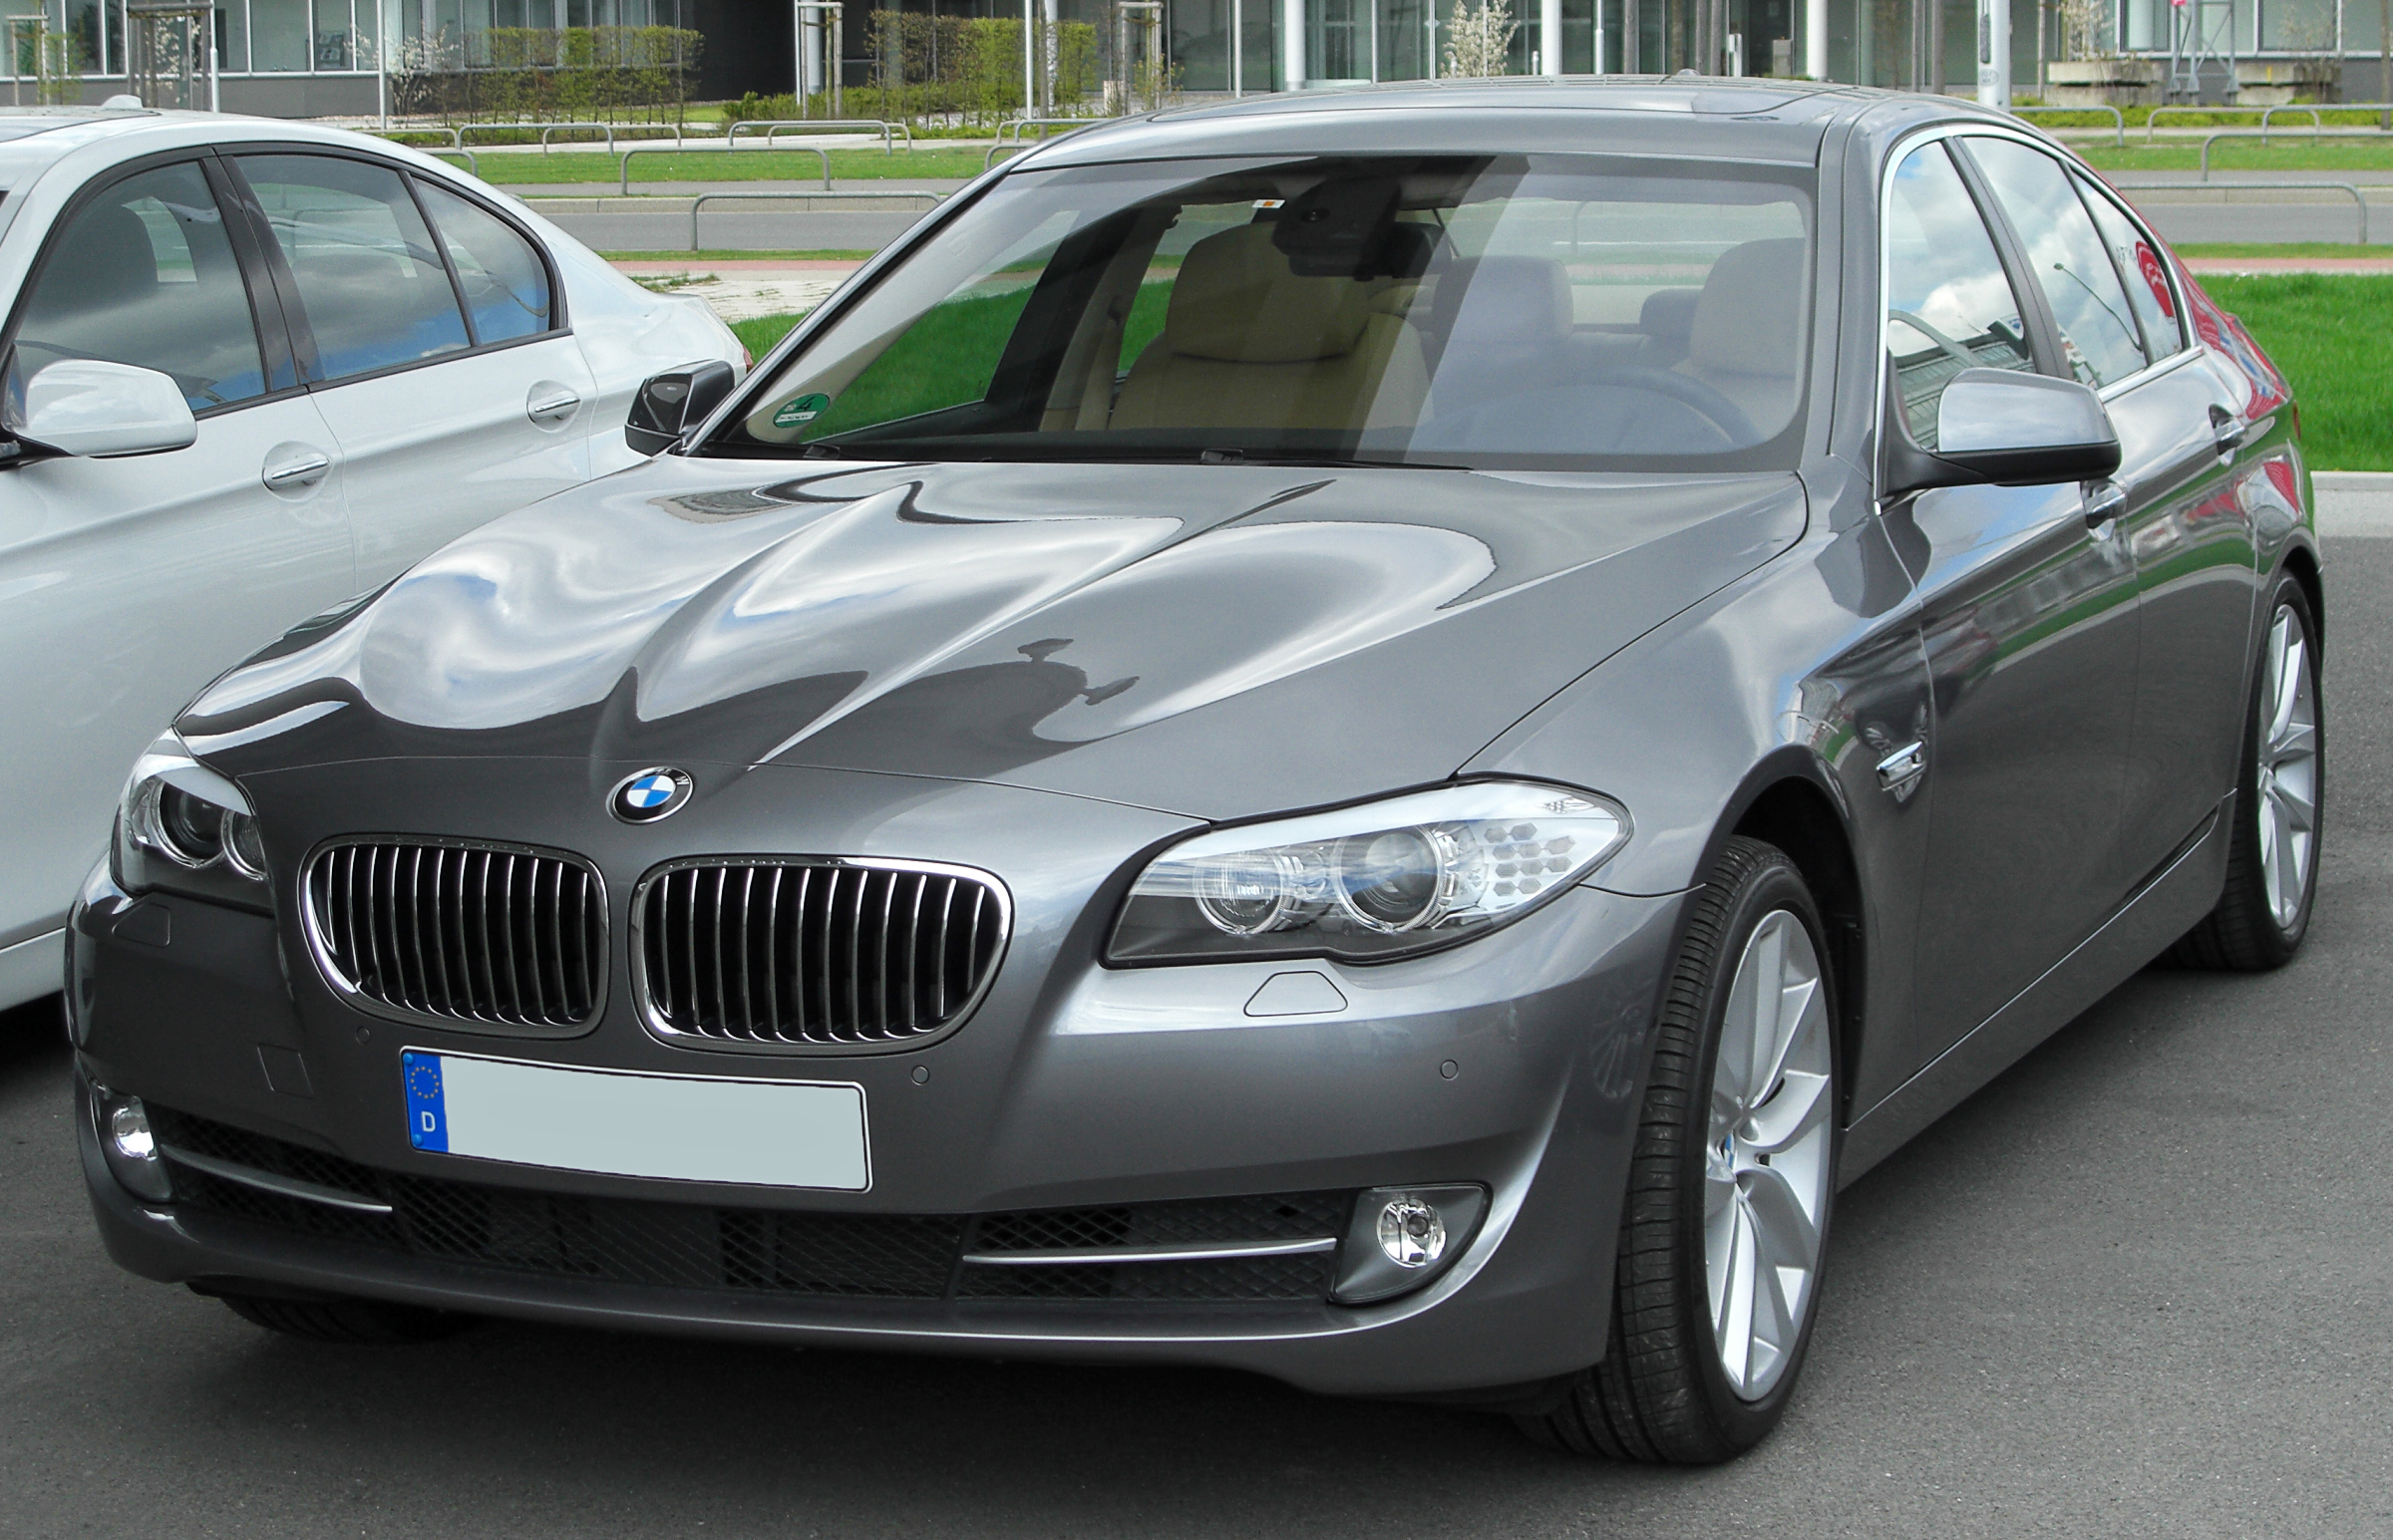 File Bmw 535i F10 Front 1 20100410 Jpg Wikimedia Commons